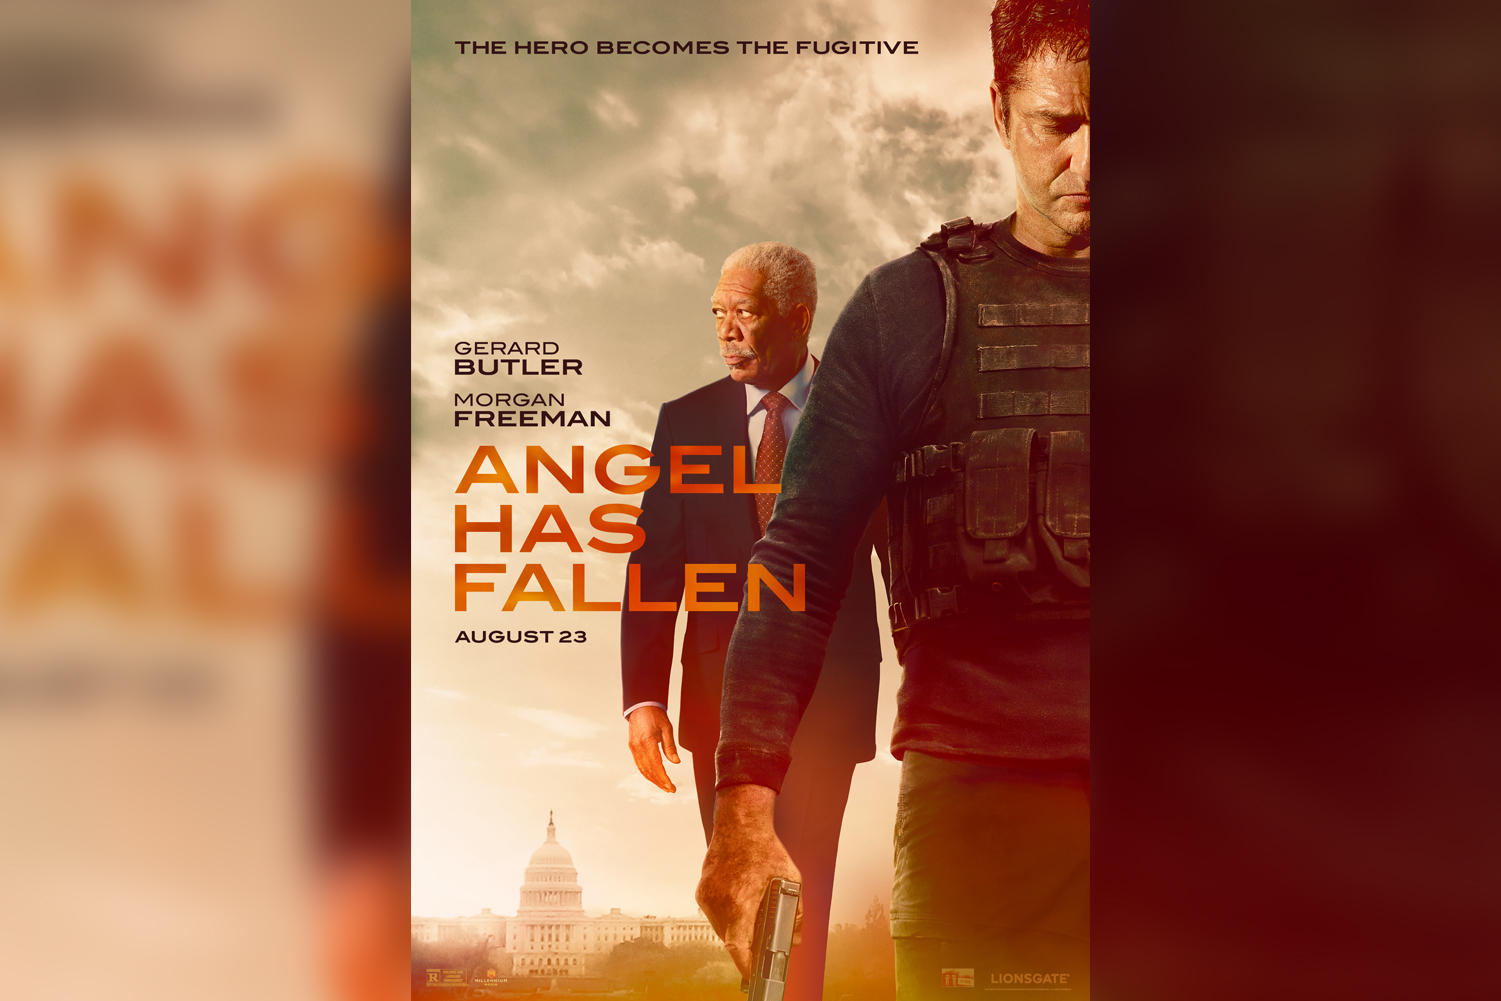 Angel Has Fallen is a 2019 American action thriller film directed by Ric Roman Waugh.